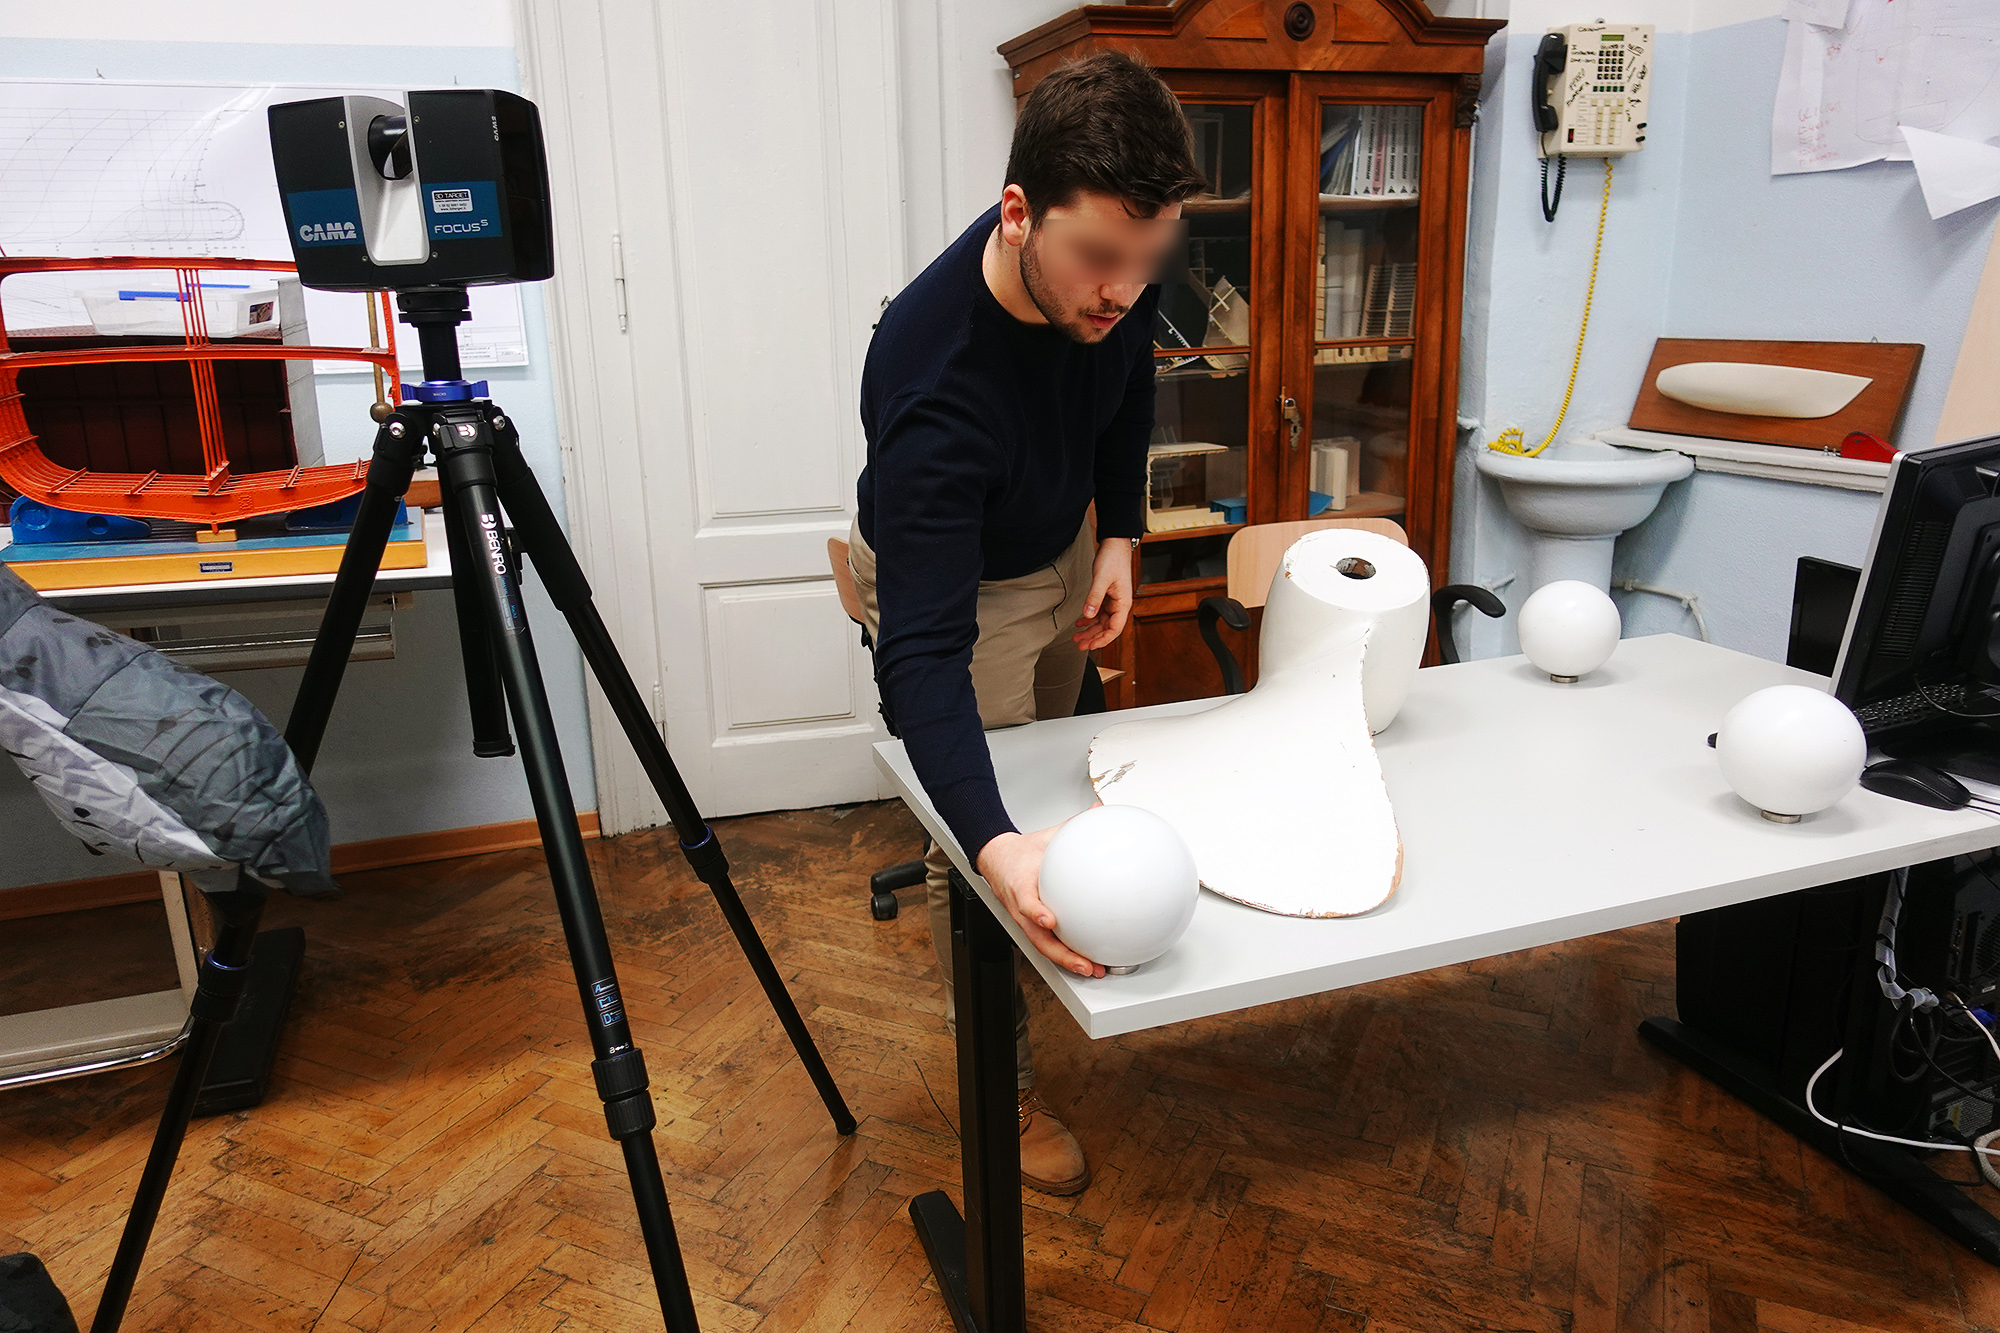 MOL2 Italy - Technician from Studio Bliznakoff preparing the object for scanning (Trieste, 19th February 2020)